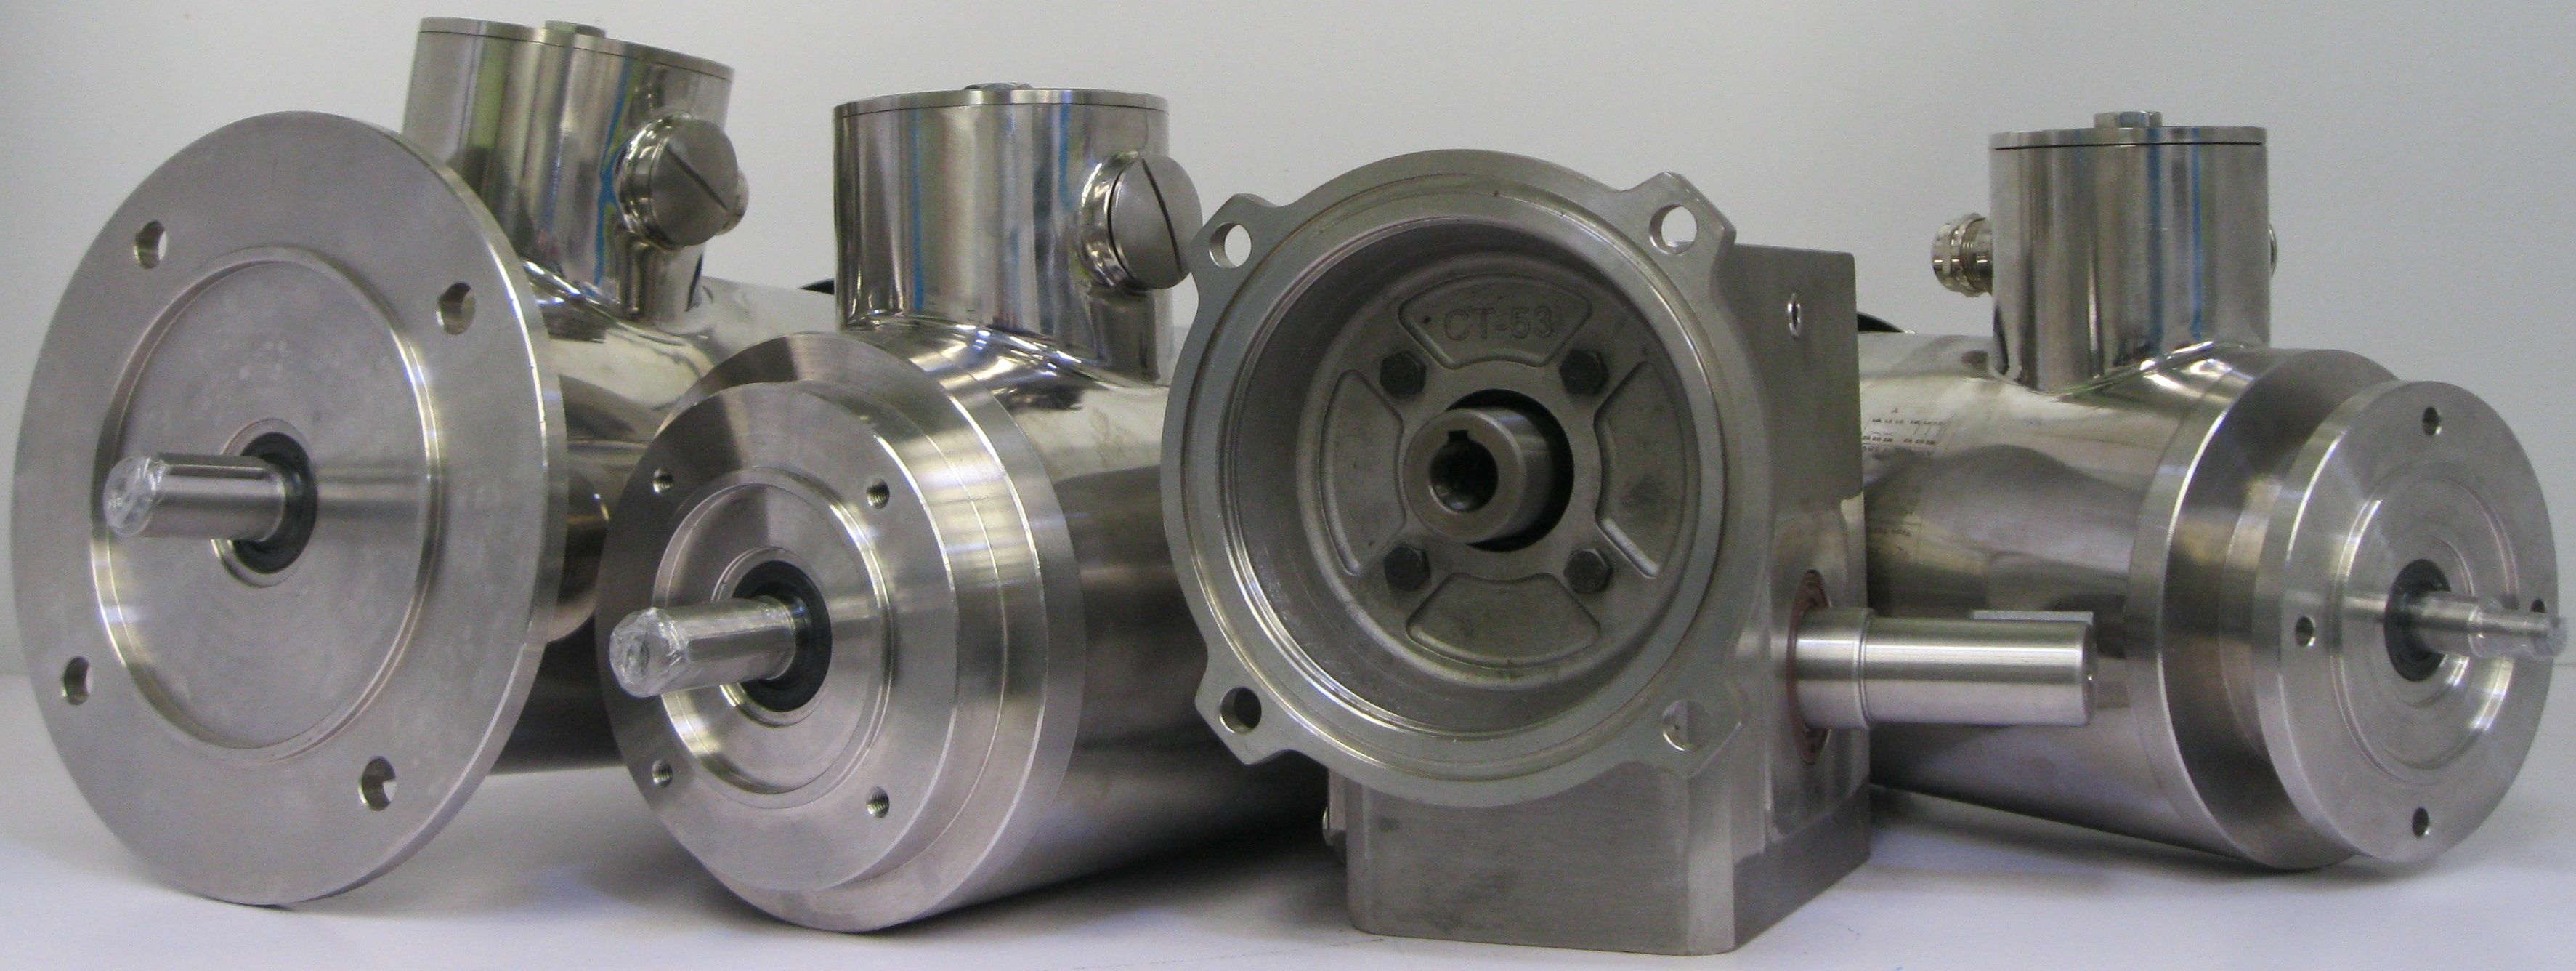 Stainless Steel Motors